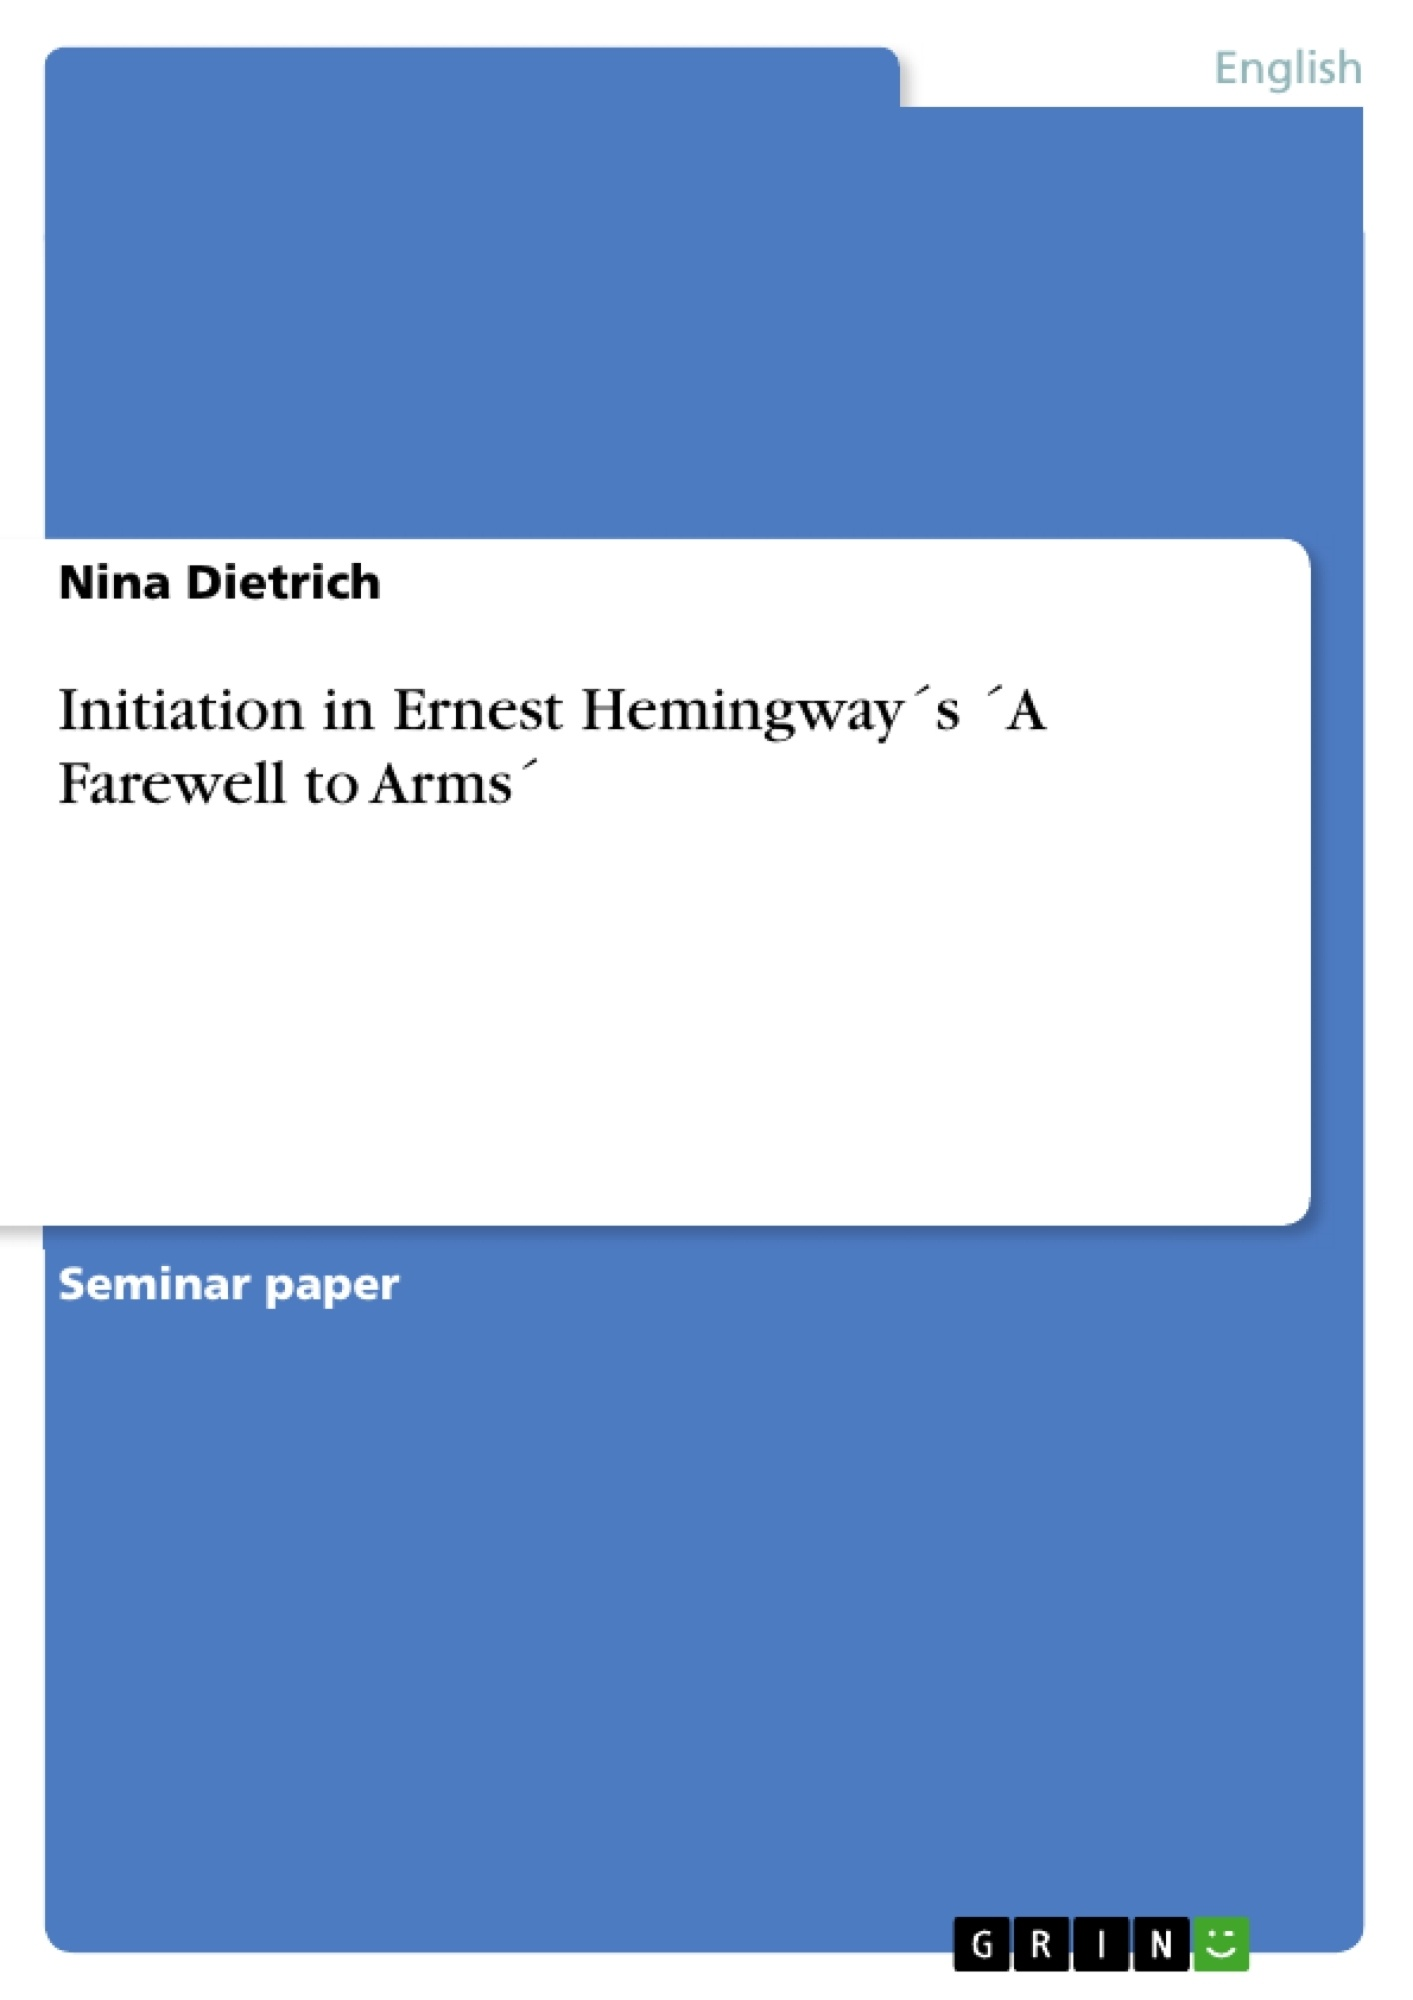 A farewell to arms thesis statement